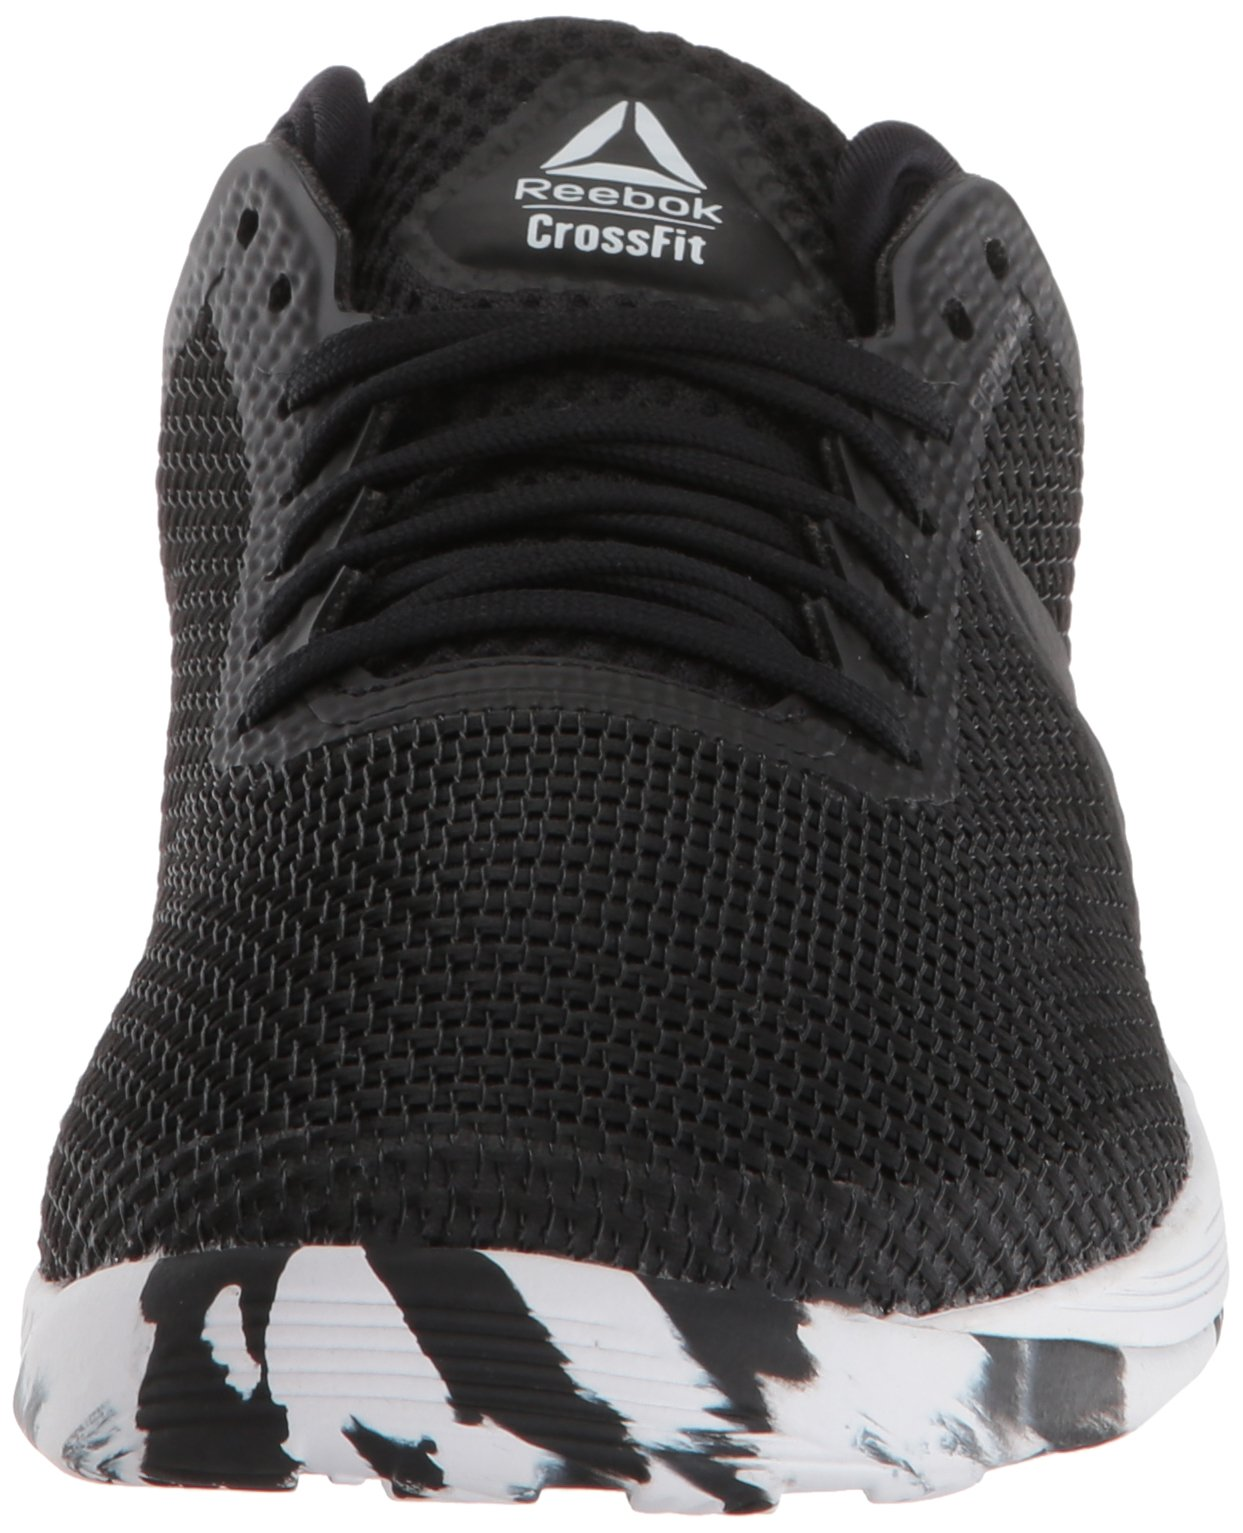 Reebok Women's CROSSFIT Nano 8.0 Flexweave Cross Trainer, Black/White/Twisted Pink, 5 M US by Reebok (Image #4)